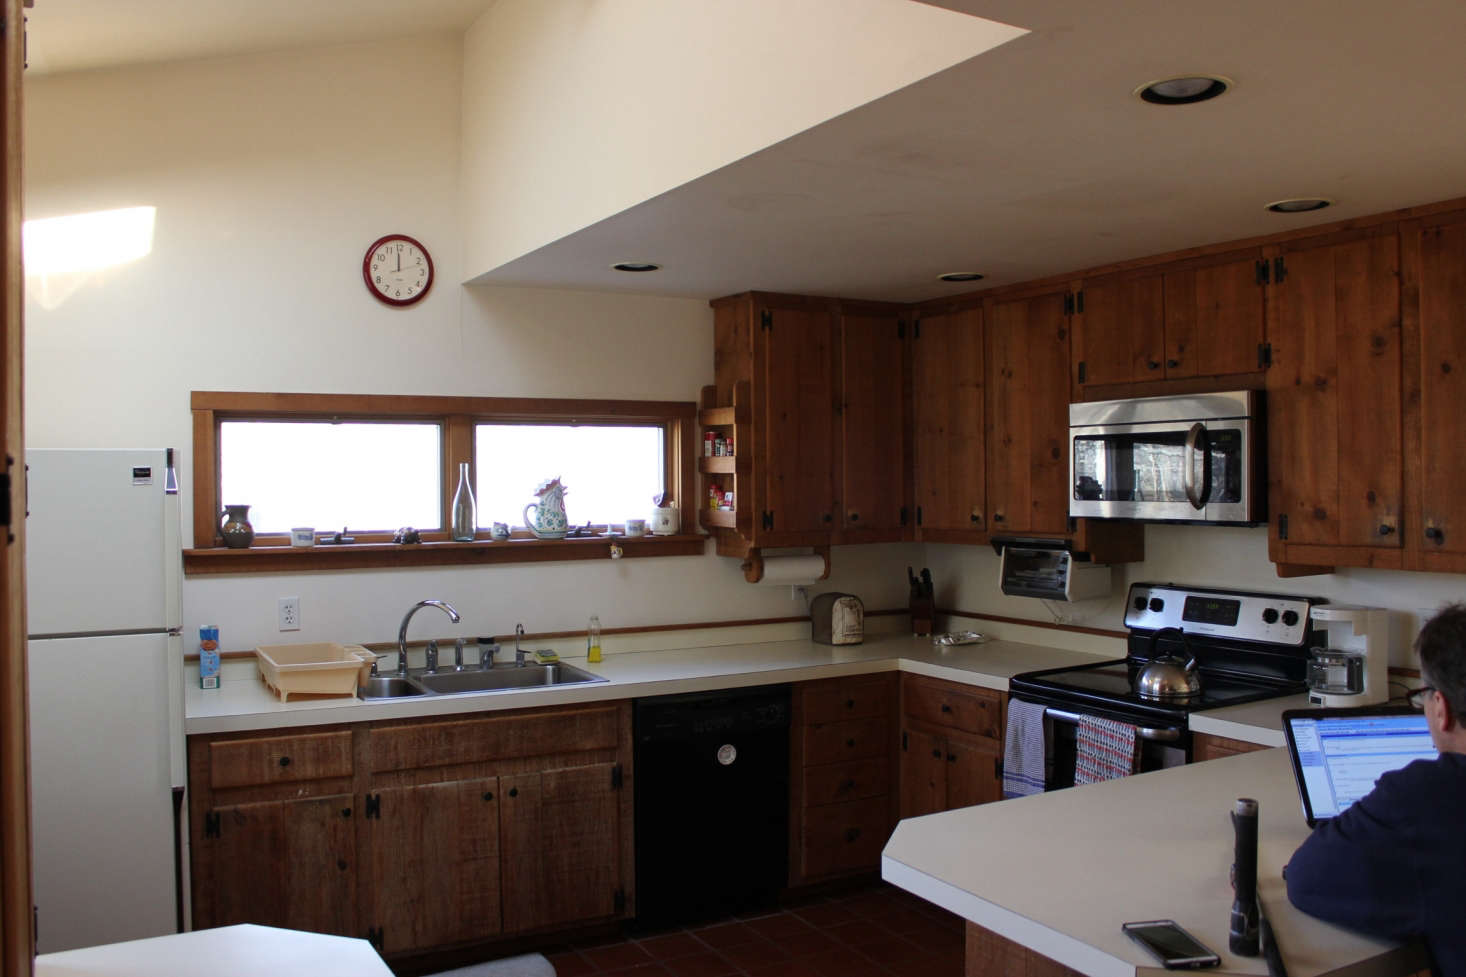 The kitchen, as it was. Jones opened up the enclosed space and replaced the heavy, dark cabinetry.